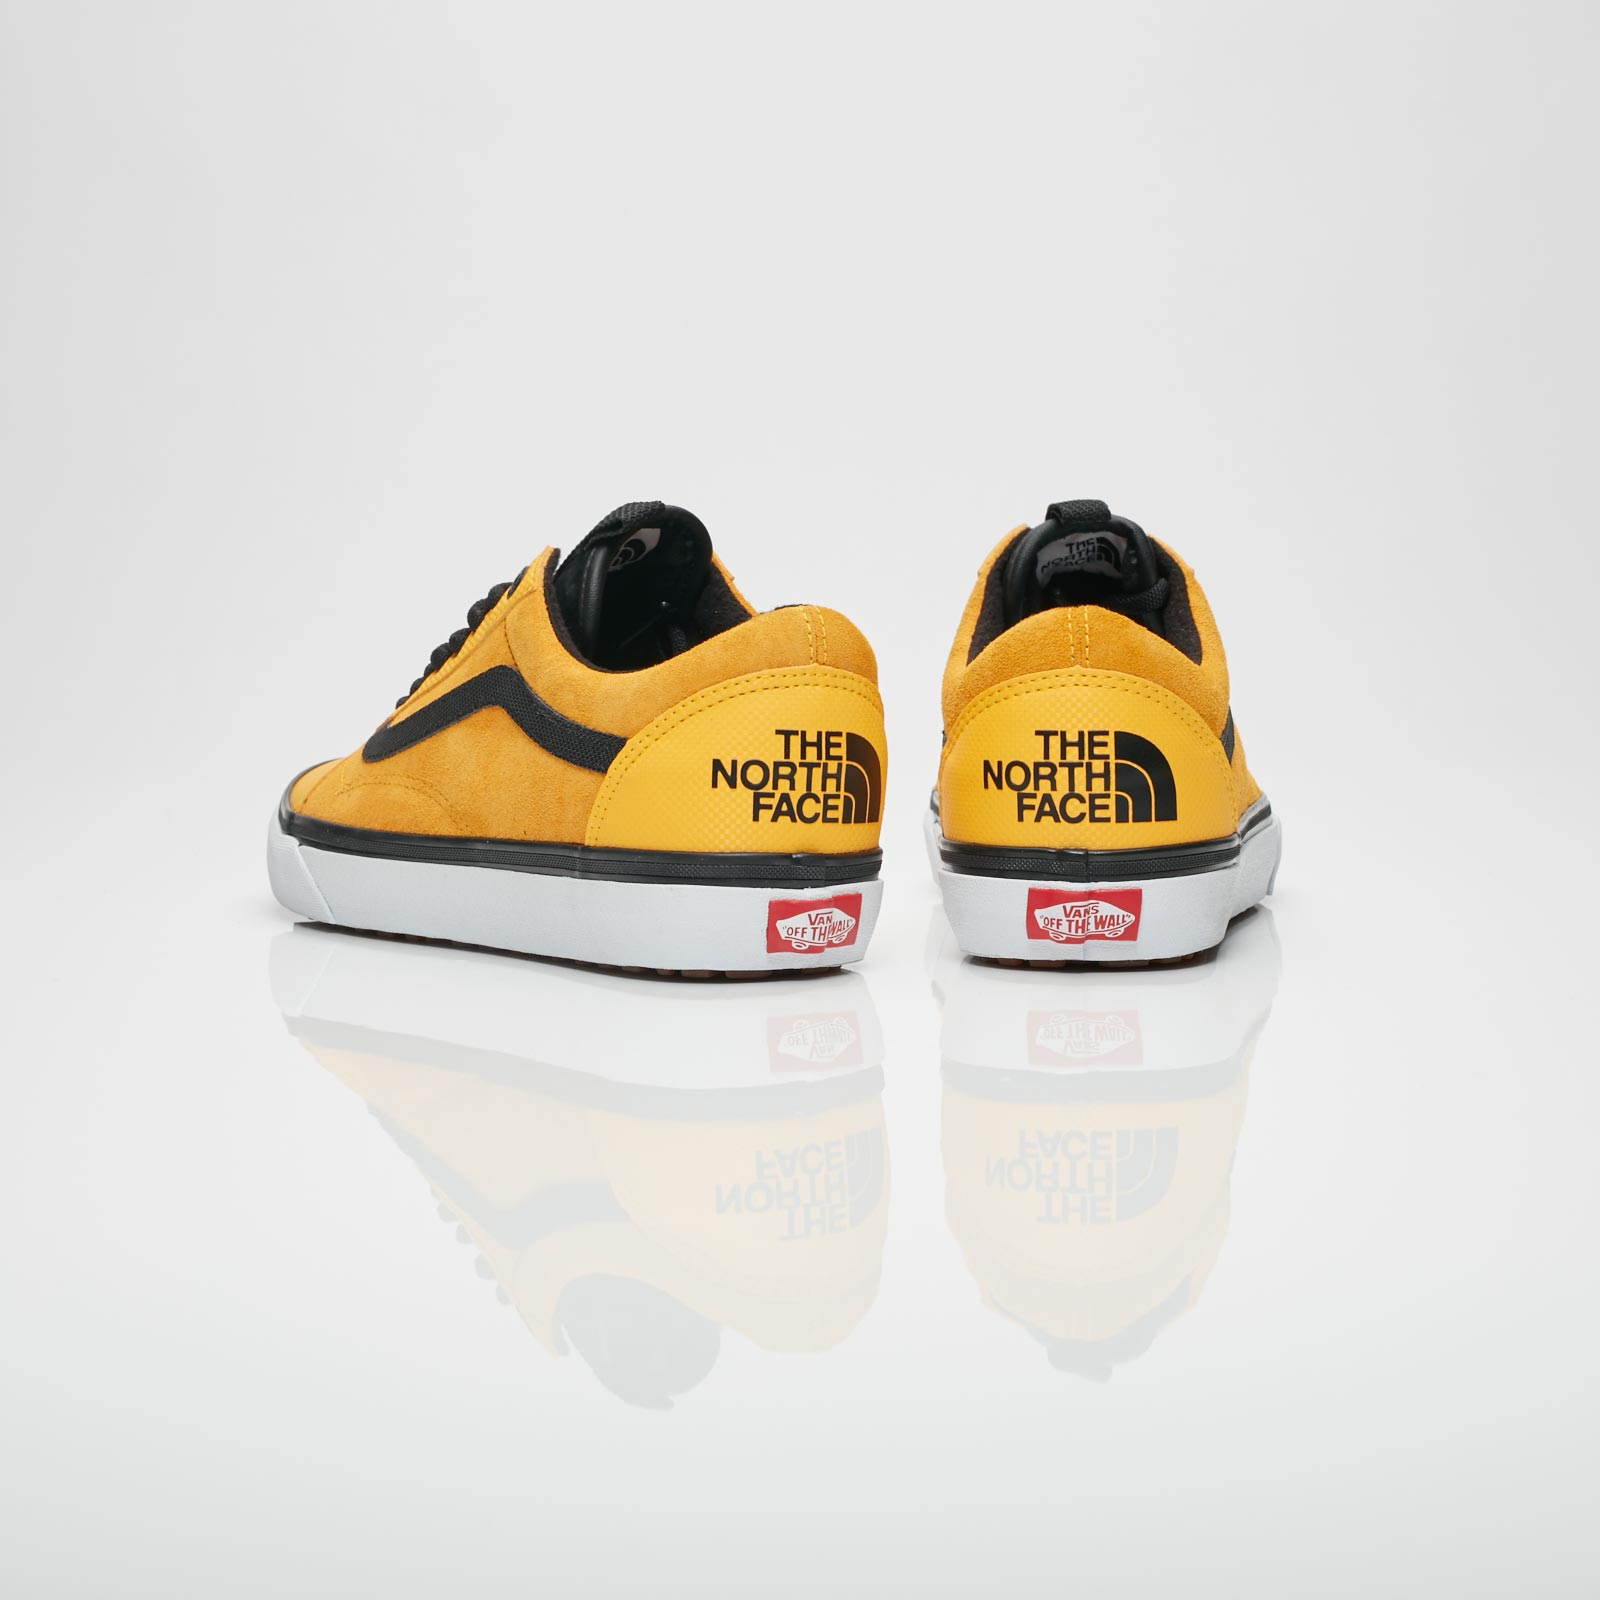 9fdbcbb95ab Vans Old Skool MTE DX x The North Face - Vn0a348gqwi ...